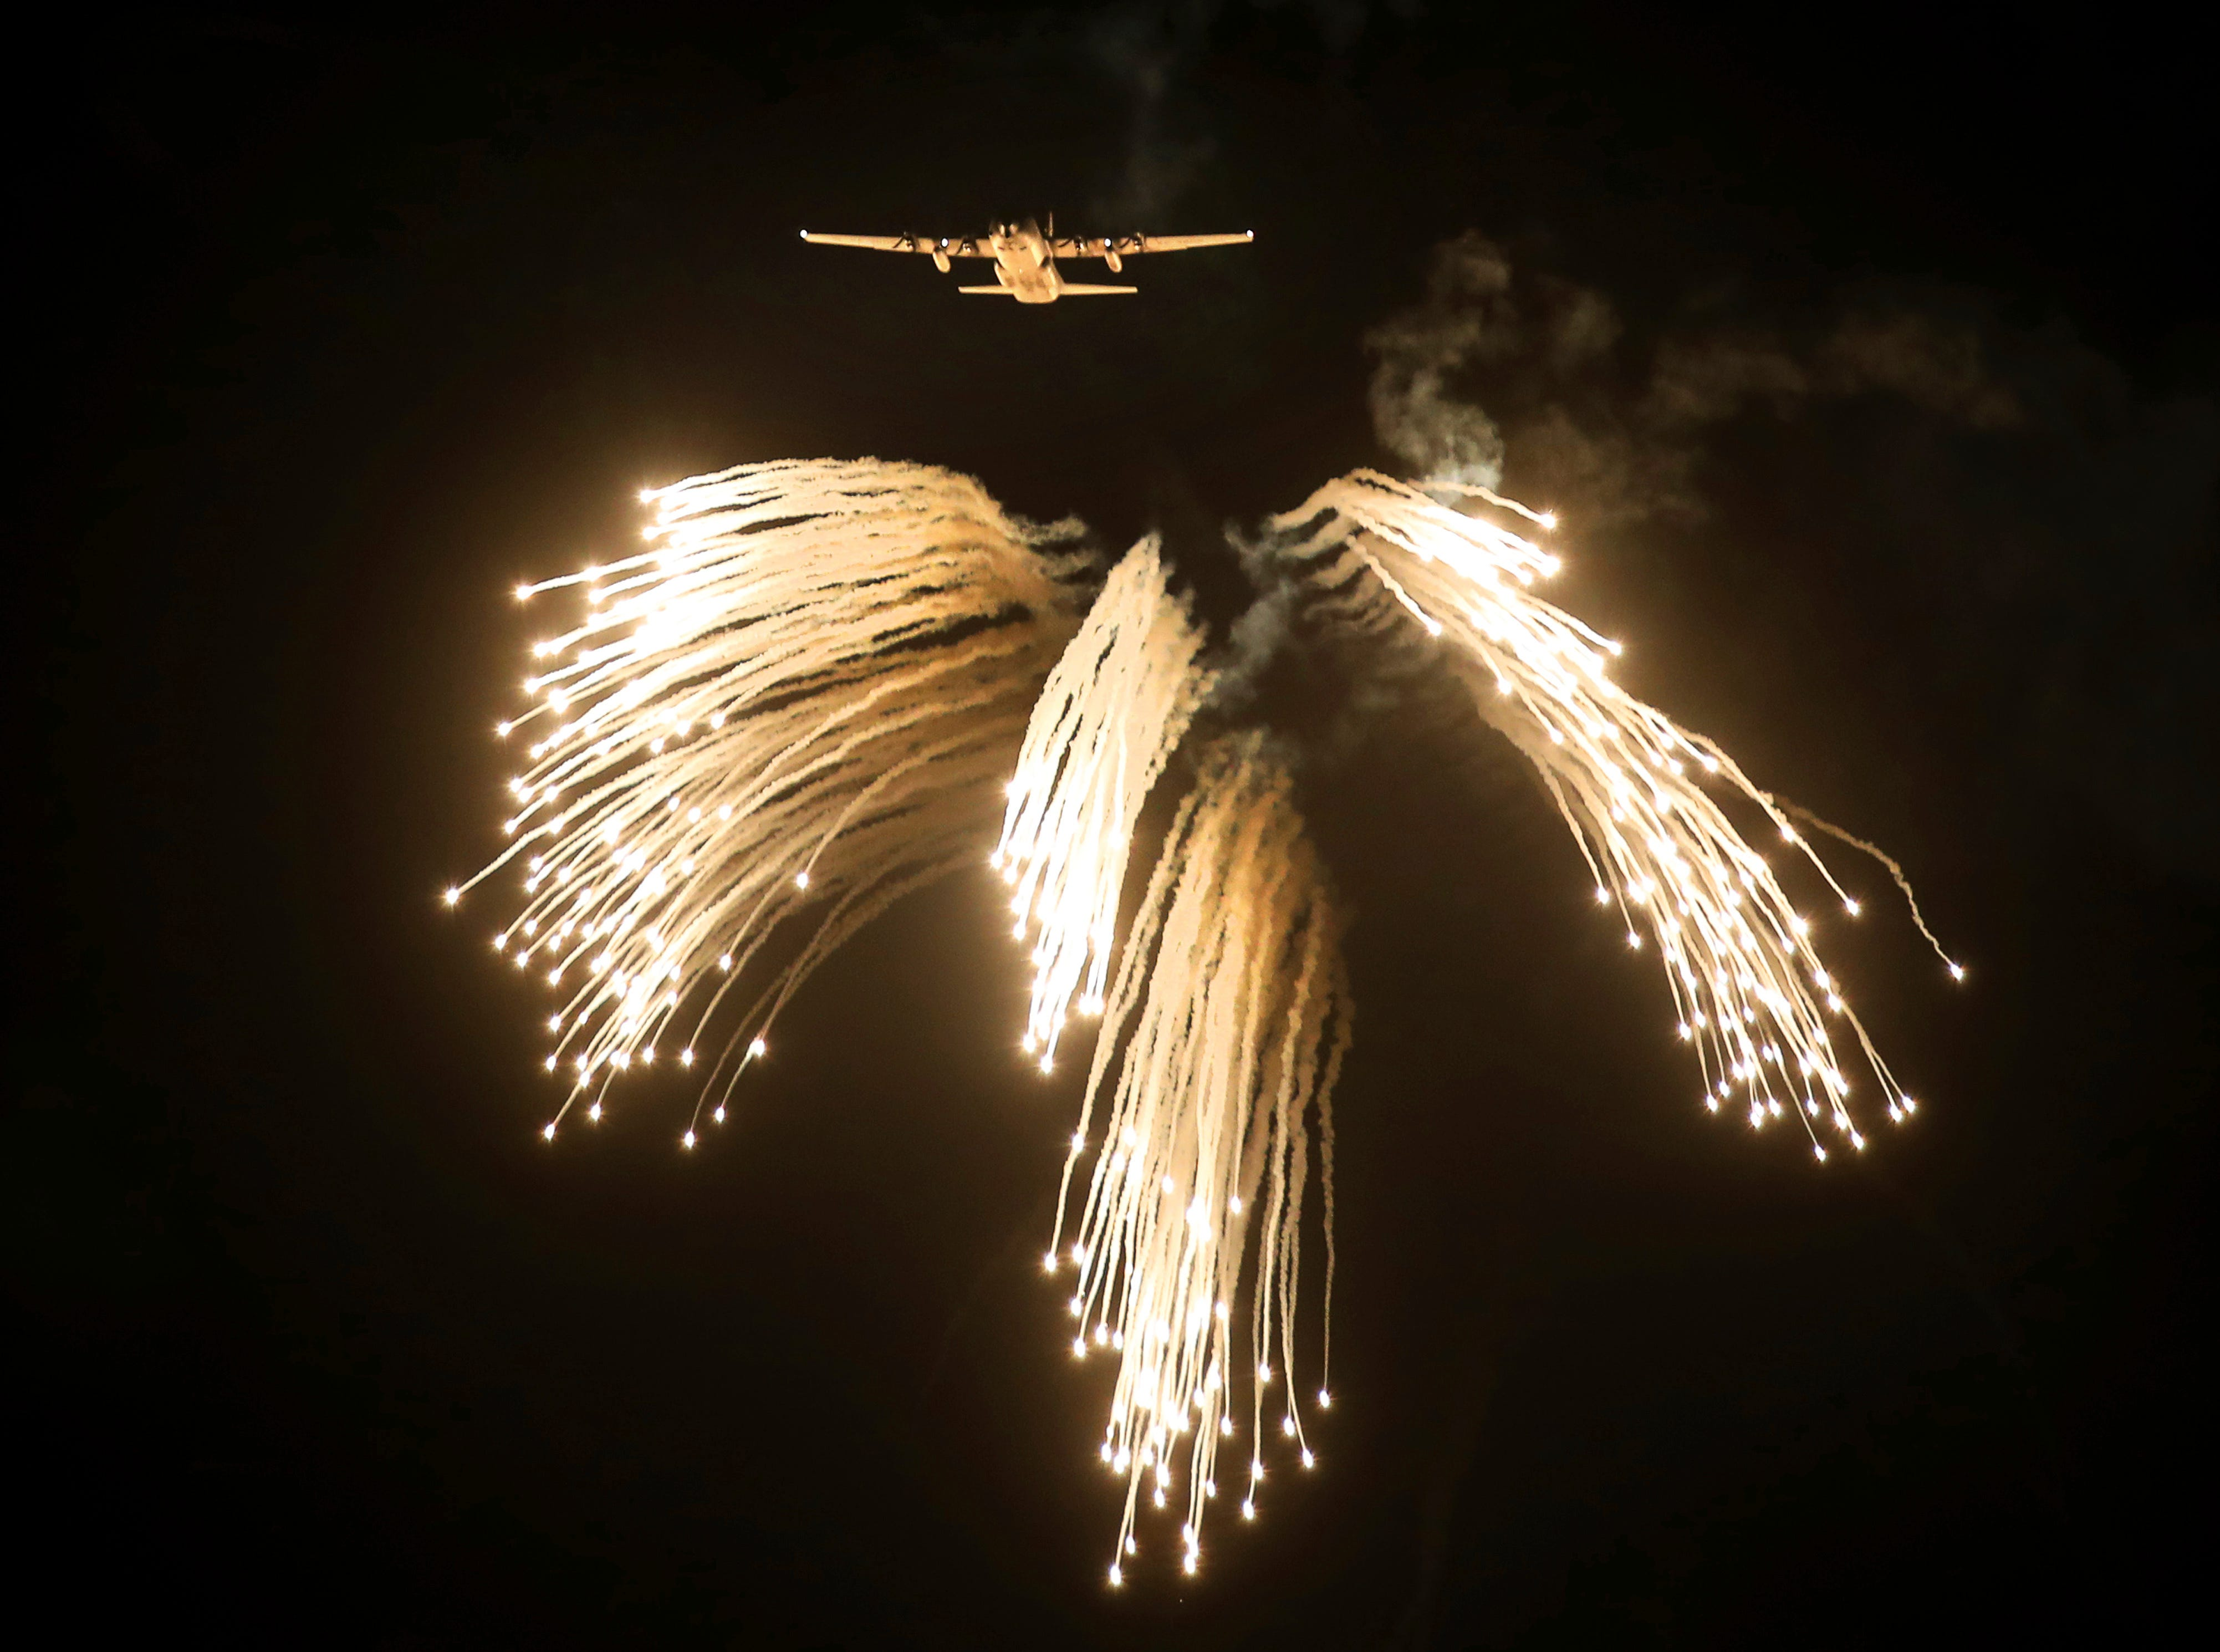 An Indian Air Force C-30J dispenses flares during an air exercise named 'Vayu Shakti-2019', or air power, at Pokhran, in the western Indian state of Rajasthan, Saturday, Feb. 16, 2019. The IAF carried out an exercise near the border with Pakistan, showcasing indigenously-developed Light Combat Aircraft (LCA) Tejas, Advanced Light Helicopter (ALH) , the Akash surface-to-air missile and Astra air-to-air missile, among others.